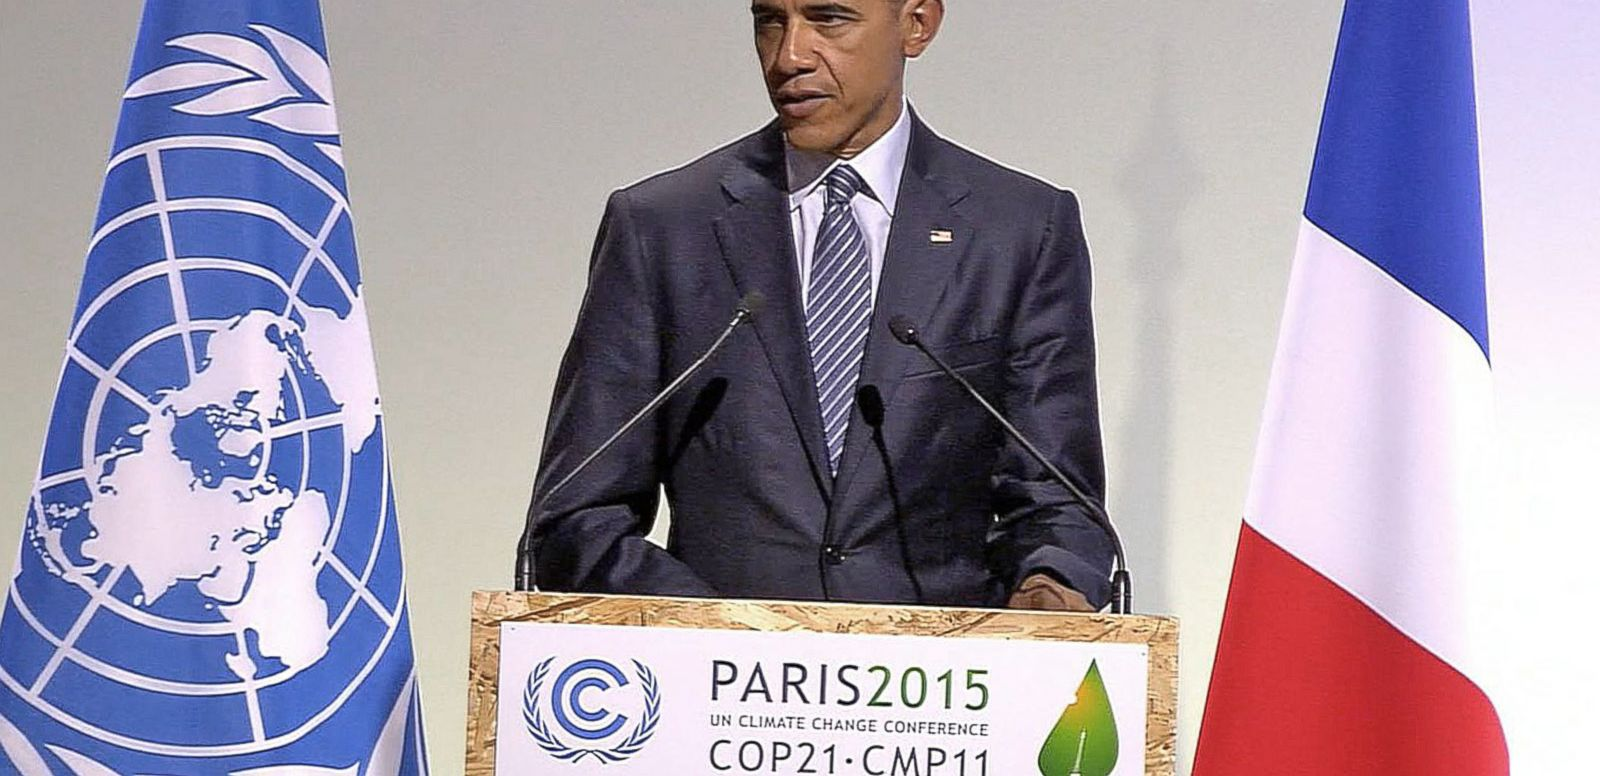 VIDEO: Paris Climate Talks Move Forward Despite Recent Terror Attacks